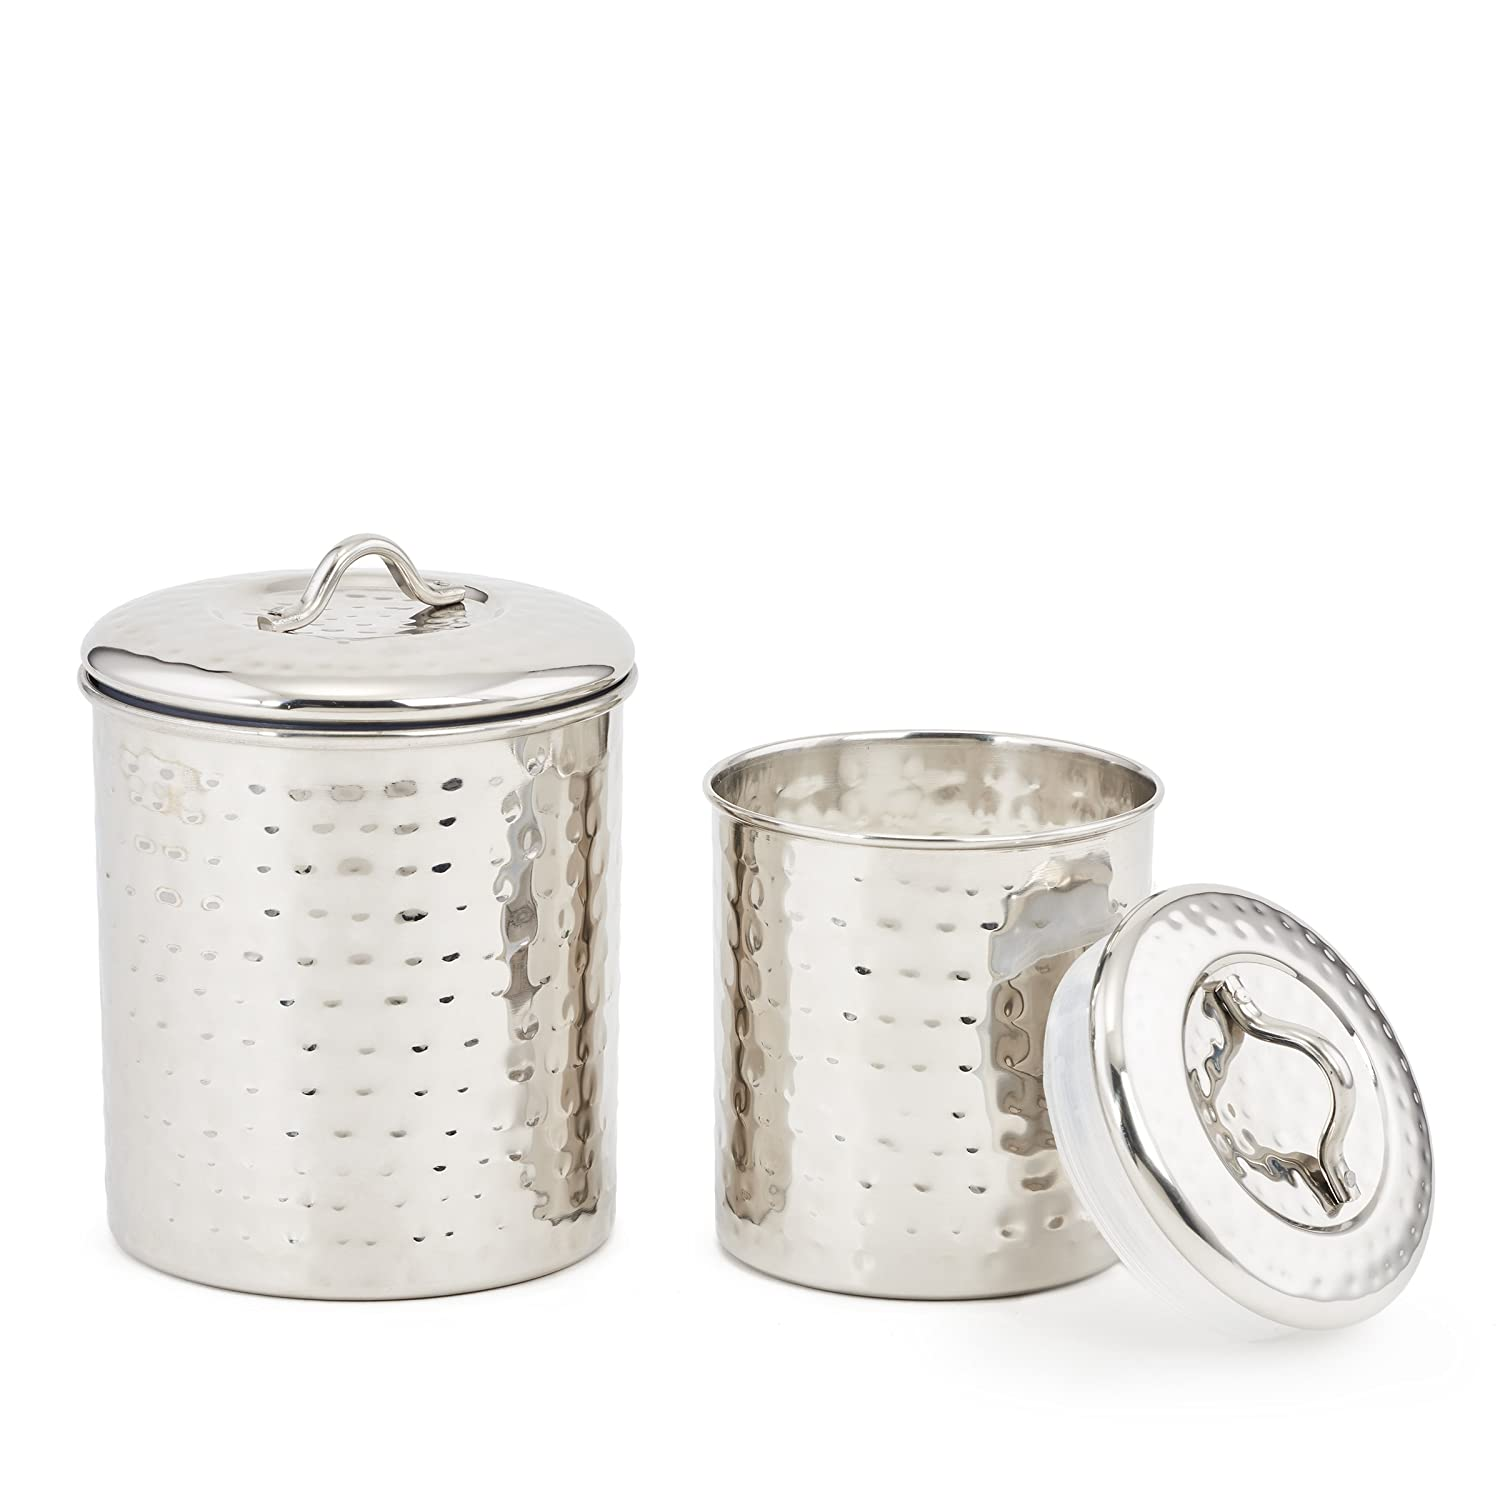 Old Dutch 946 Hammered Stainless Steel Pasta Canister, 12 H 12 H